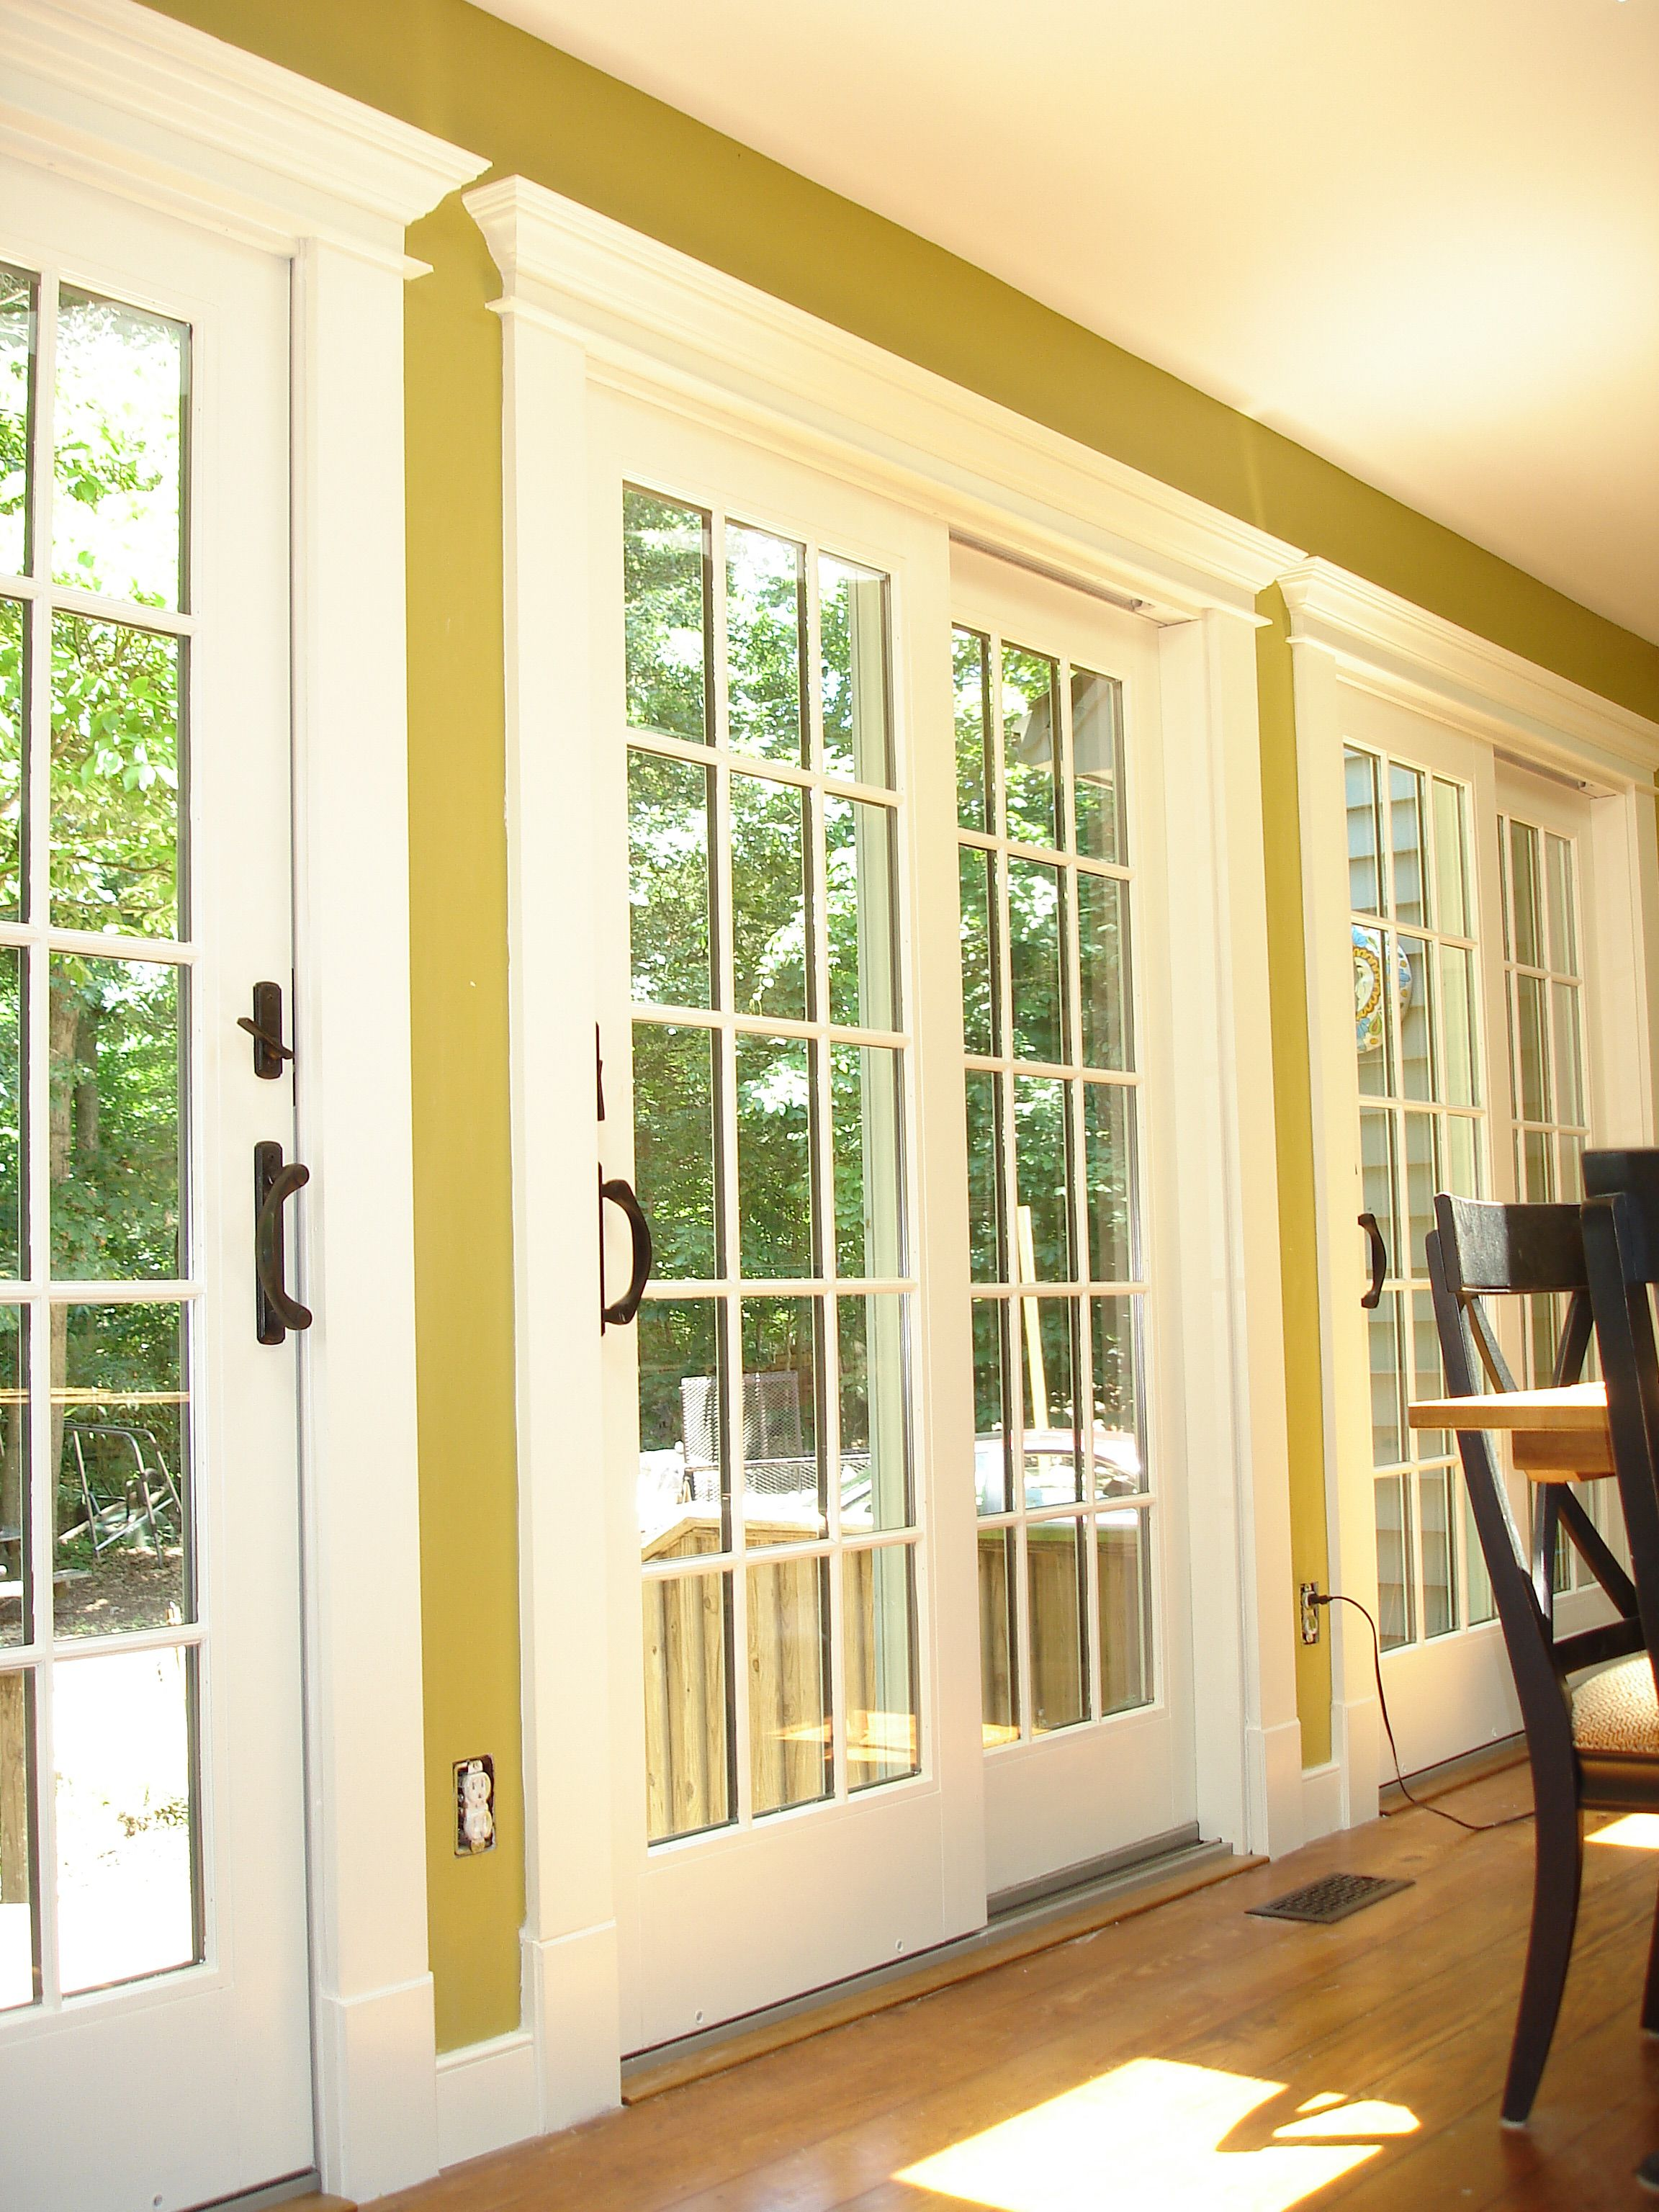 These are the anderson 400 series sliding patio doors with for Anderson french patio doors